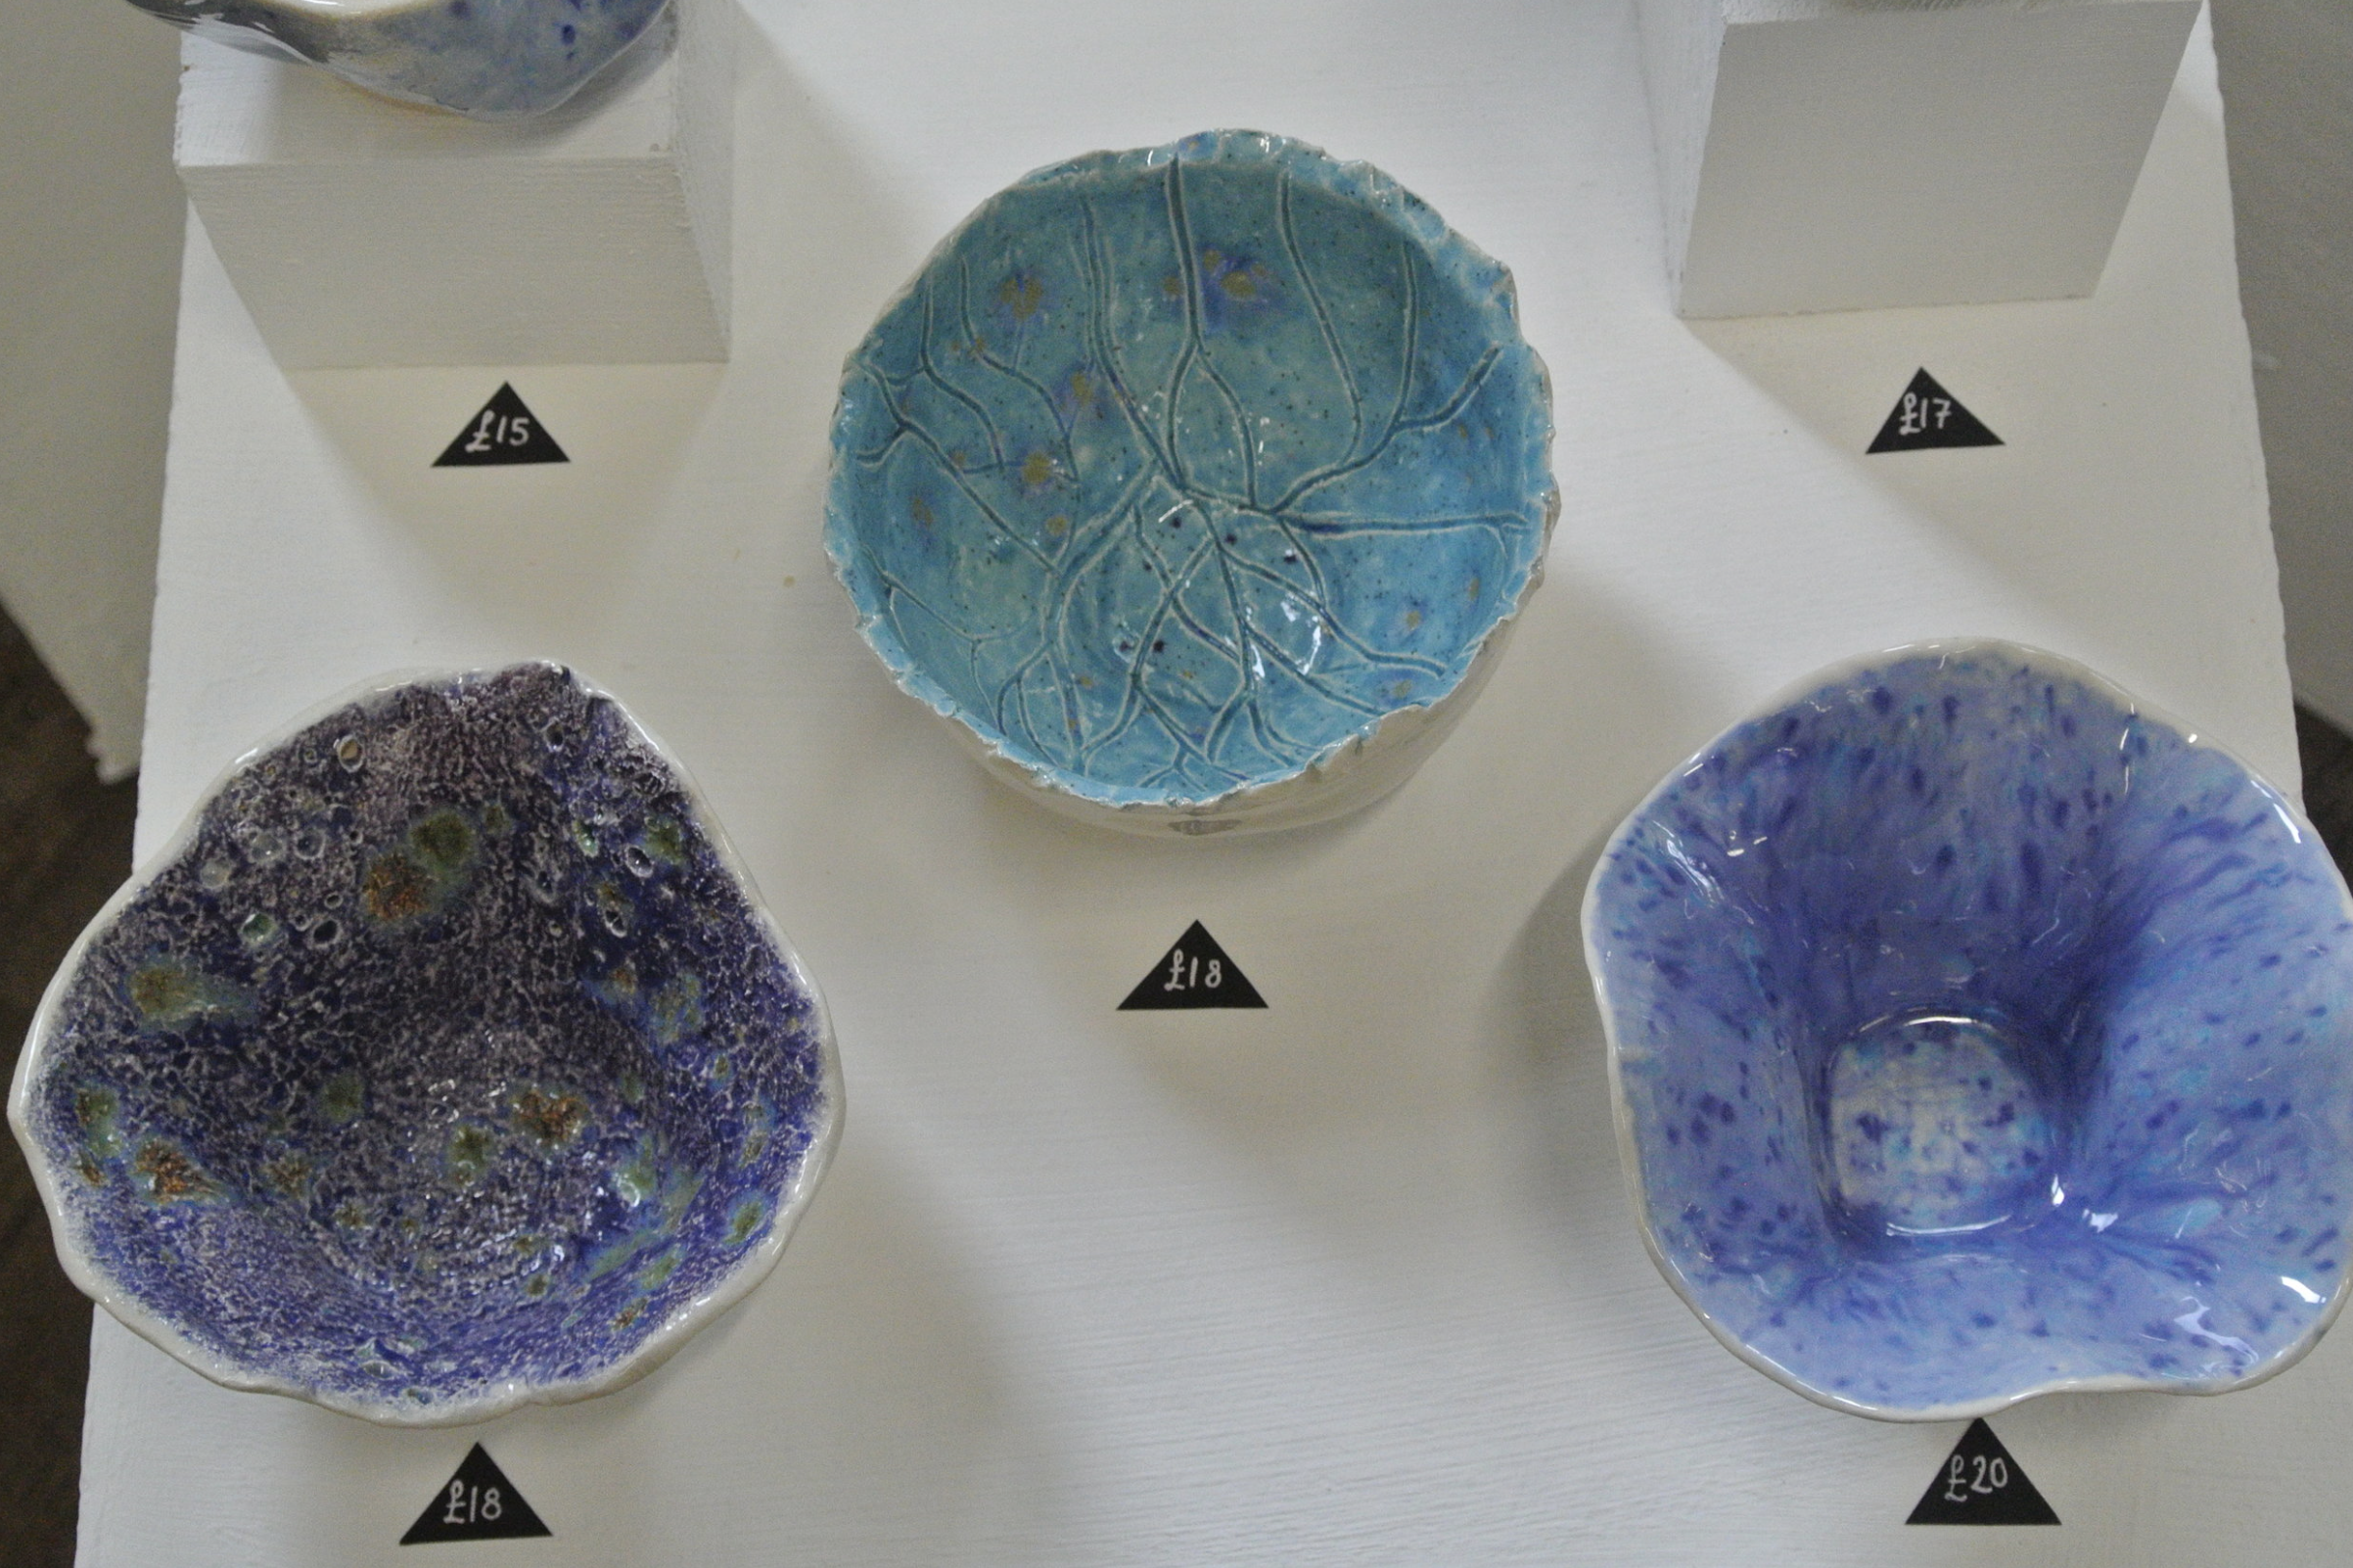 Rosie Perrett - HOMEWARE SERIES INSPIRED BY THE SEAFUTURE PLANS: SECURED A STUDIO TENANCY AT WEST STUDIOS TO CONTINUE PRACTICING HER SKILL AND SELL MORE WORK